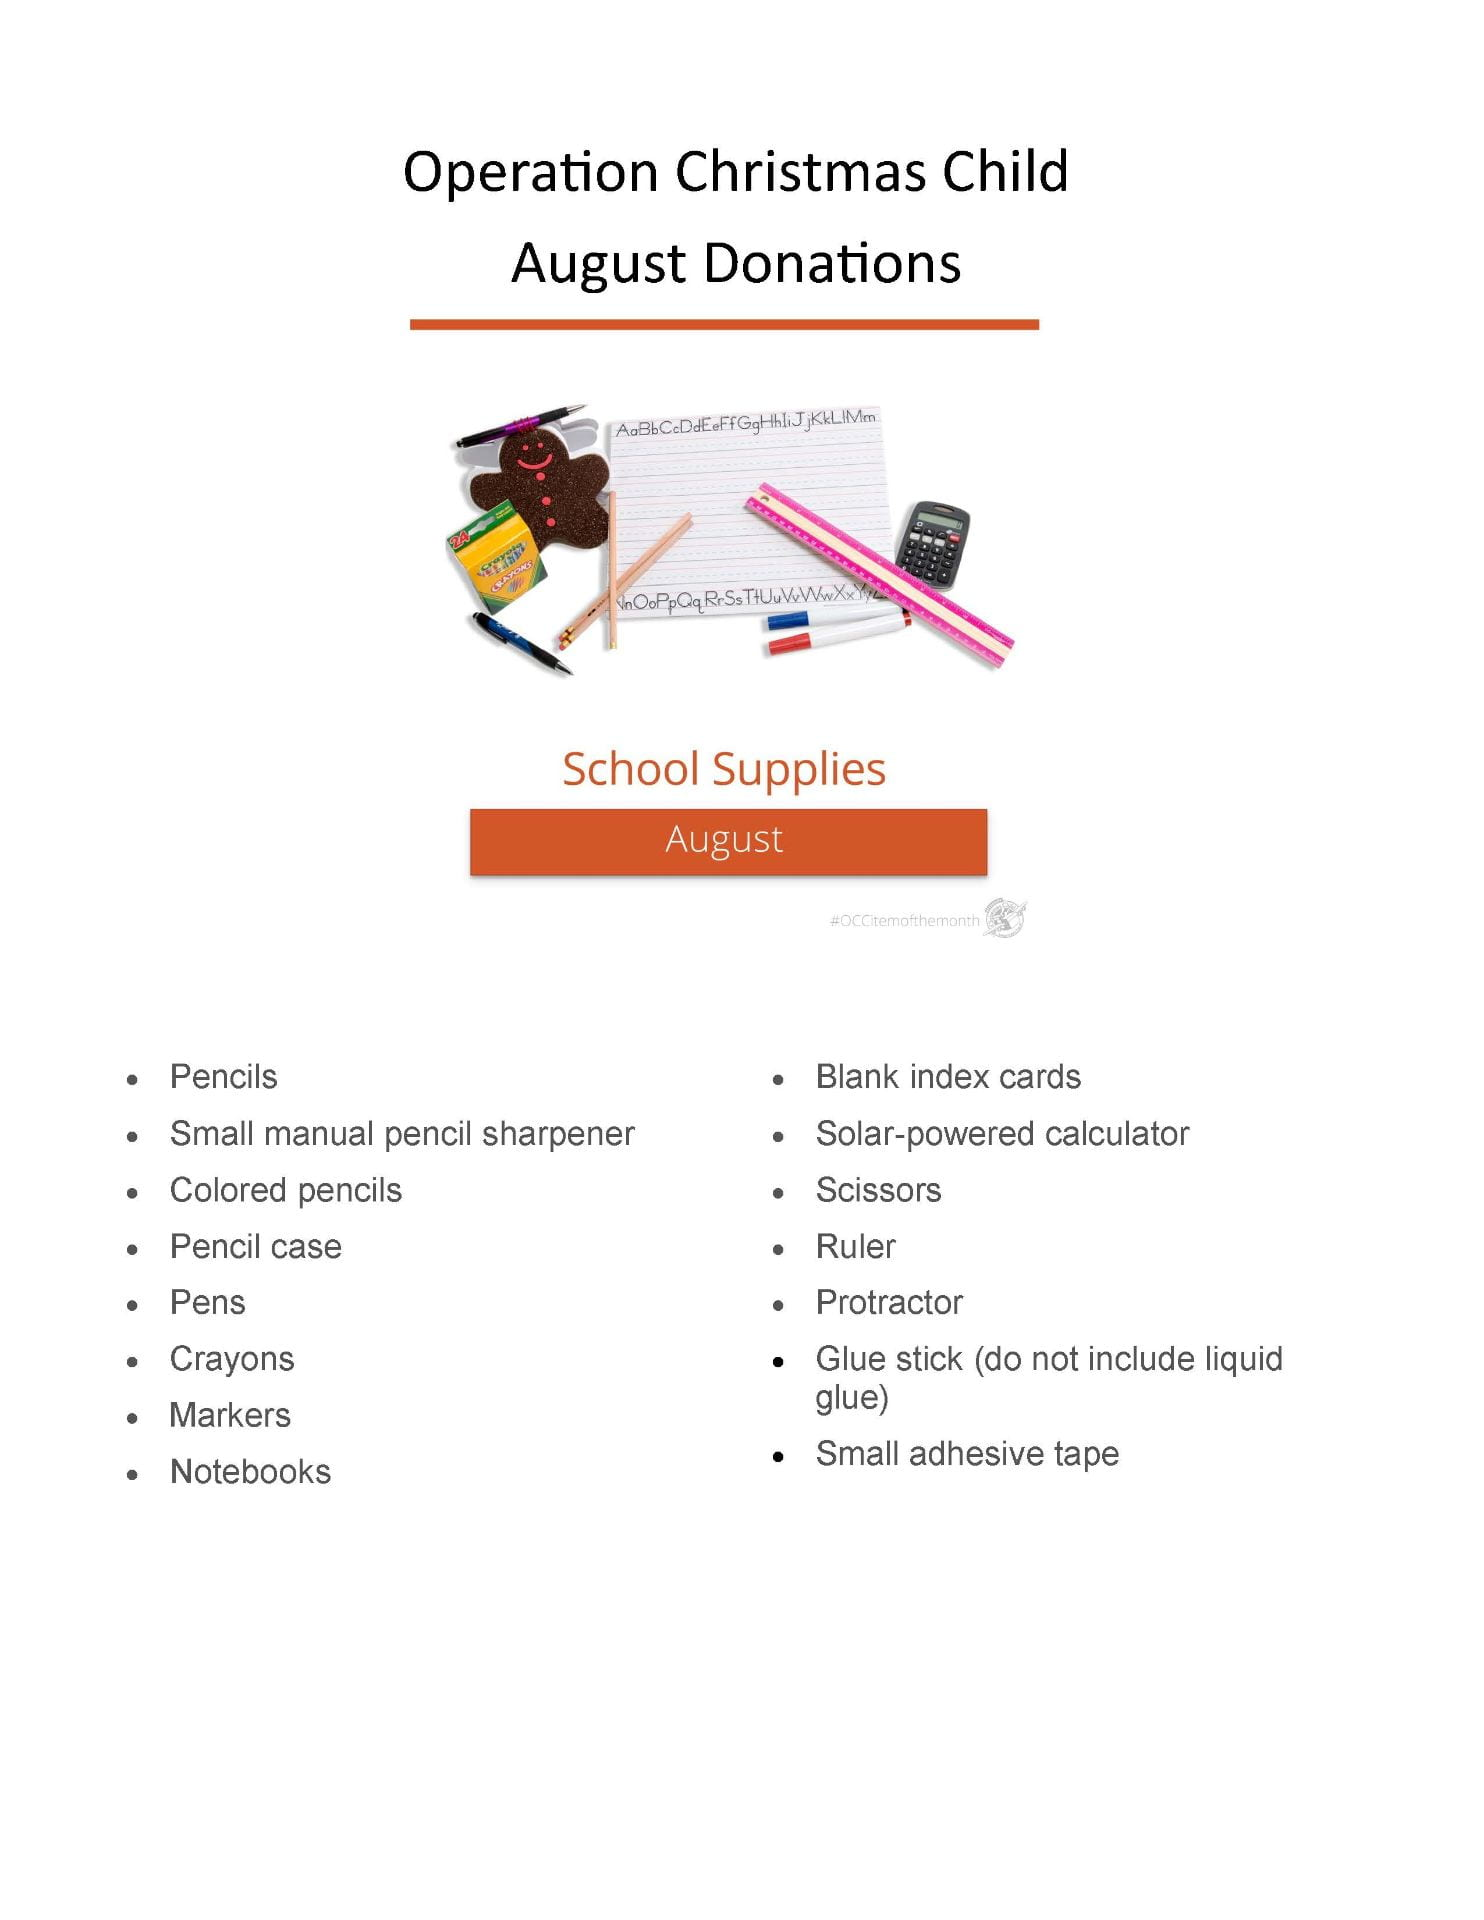 Operation Christmas Child Donations August 2020 The Sussex Connection